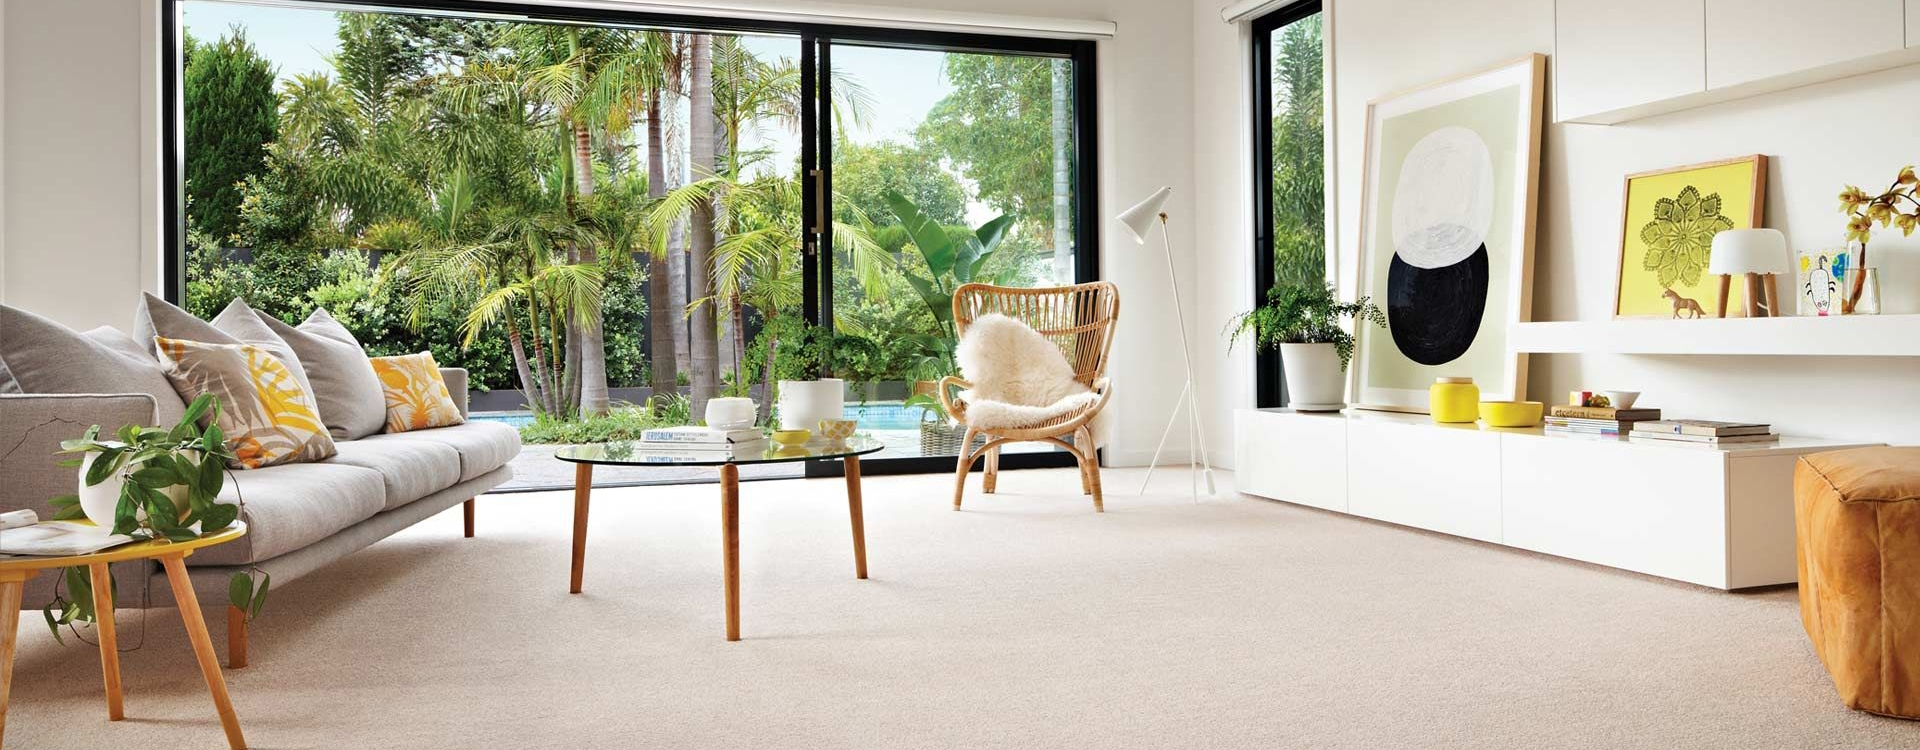 Compare Flooring Options for Your Renovation Project